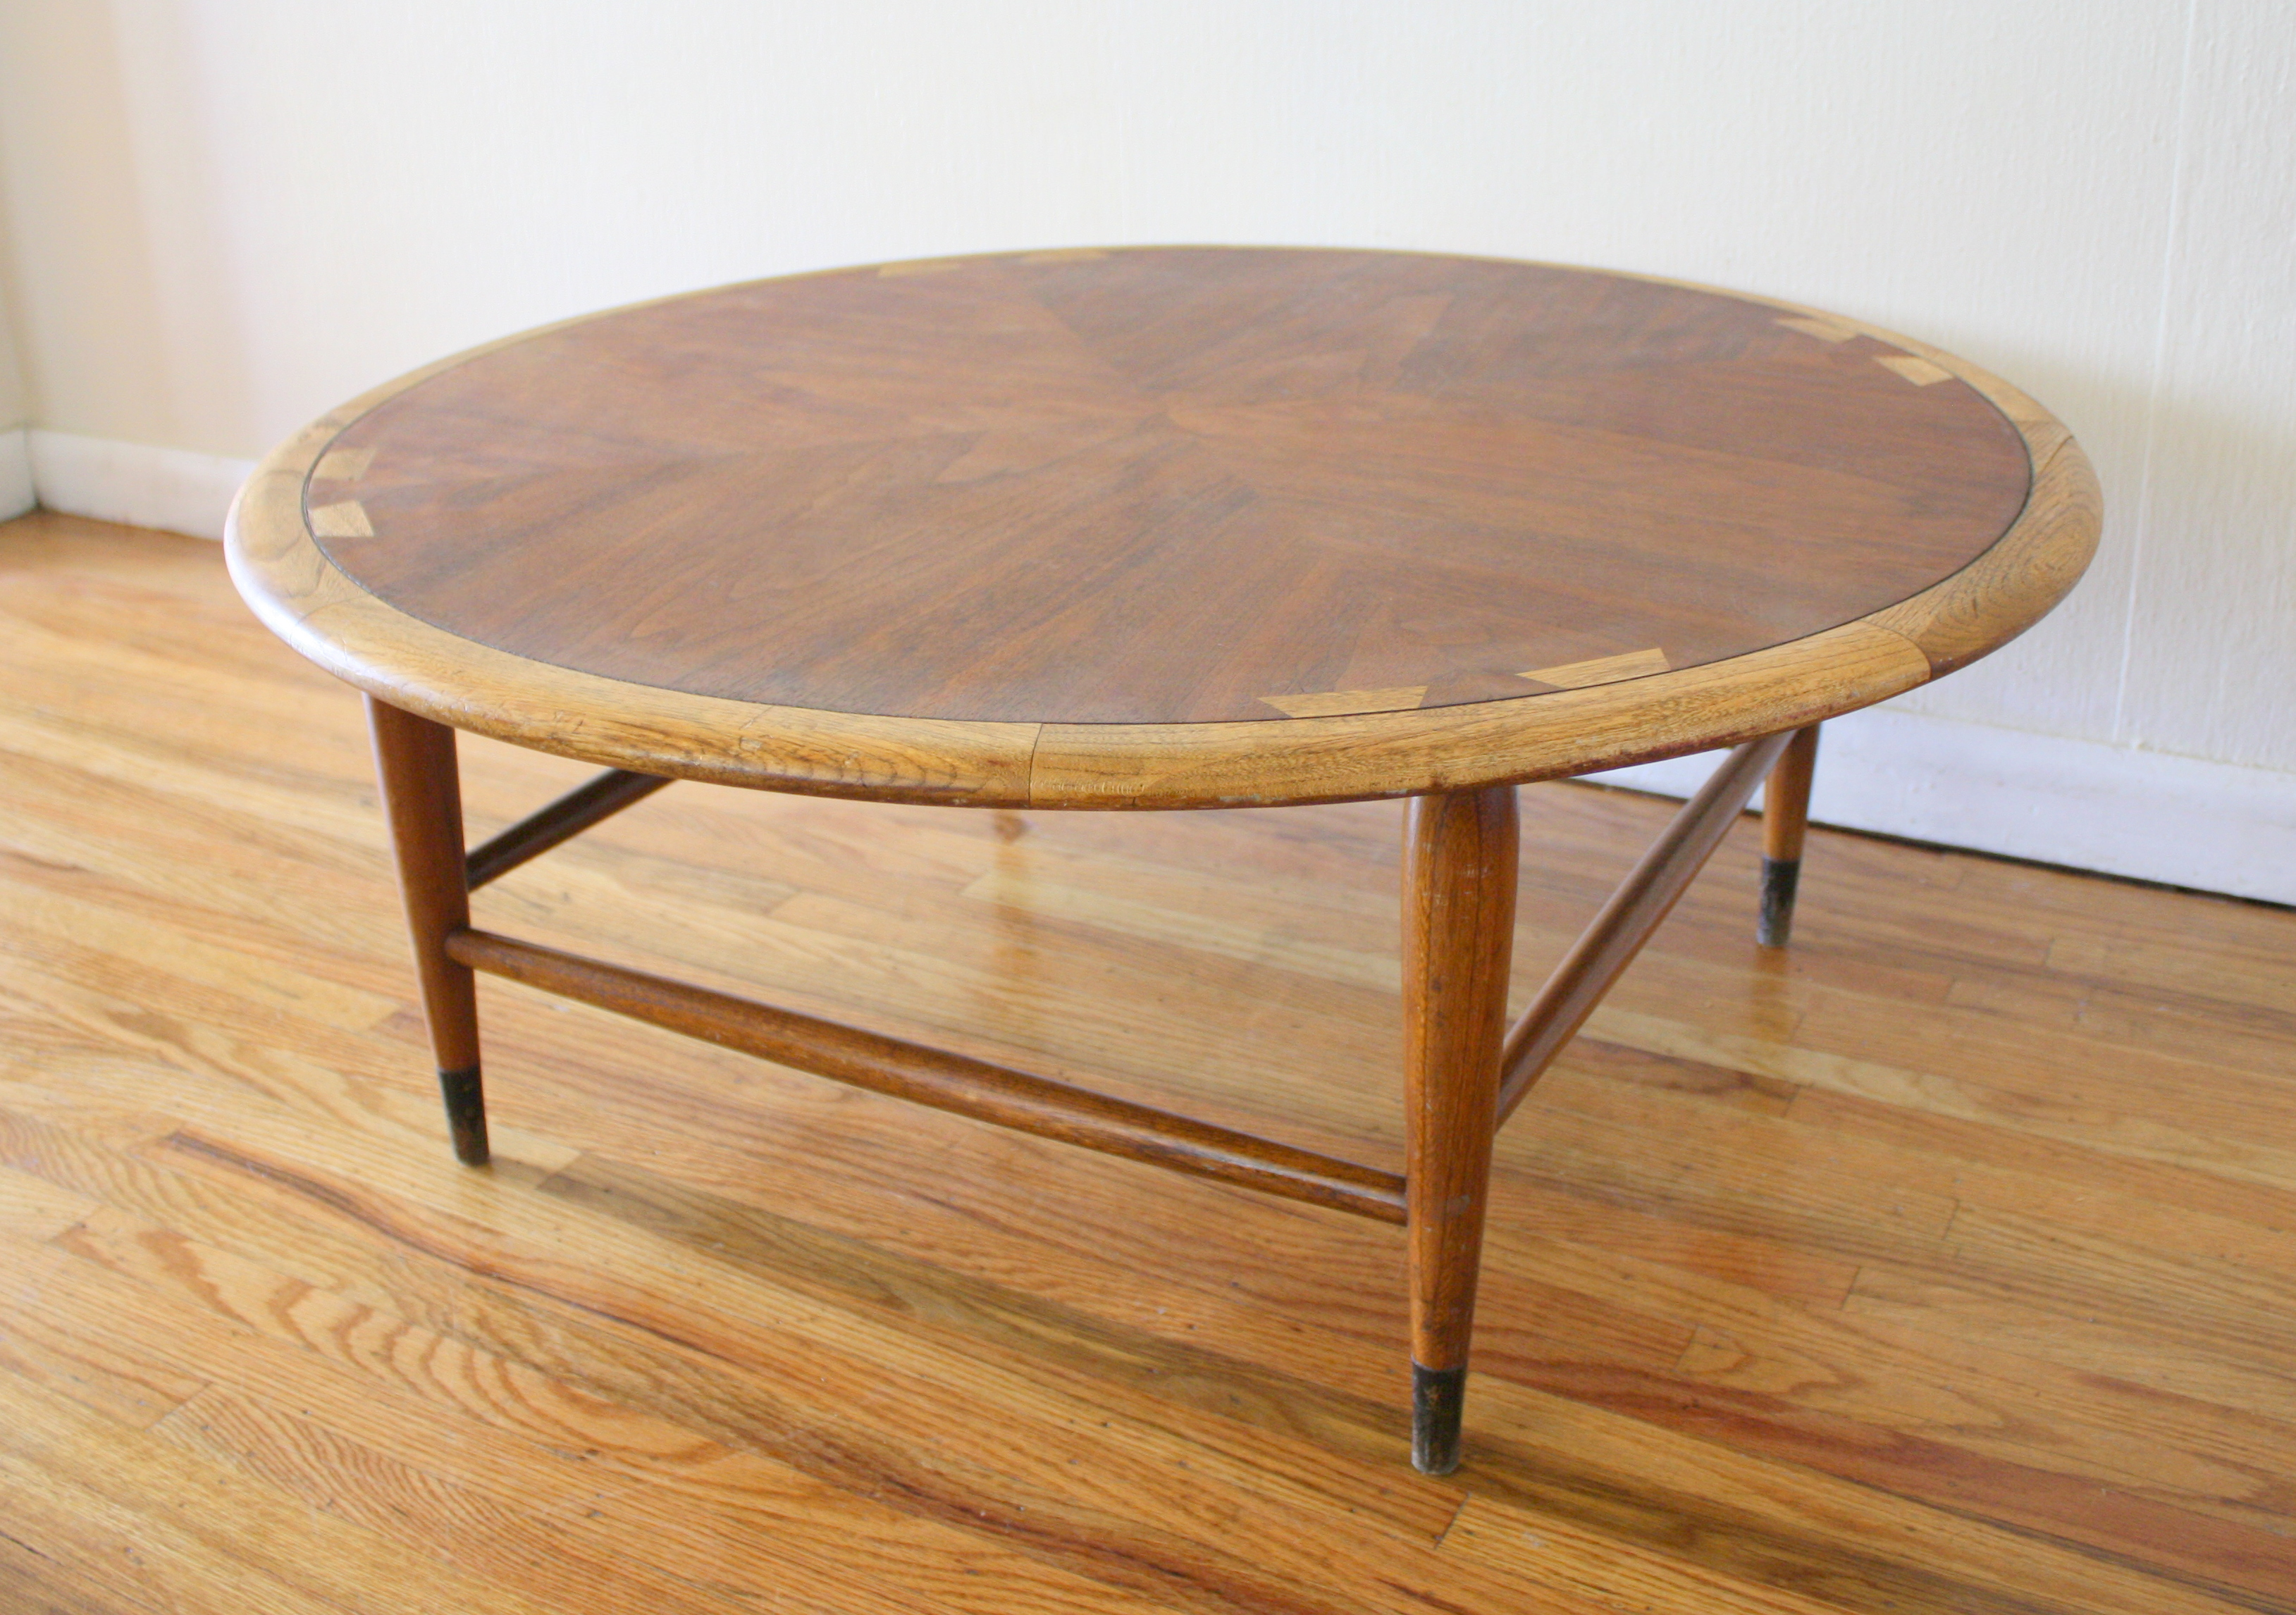 Mid Century Modern Round Lane Acclaim Coffee Table  : lane acclaim round coffee table 3 from pickedvintage.com size 3258 x 2292 jpeg 3144kB